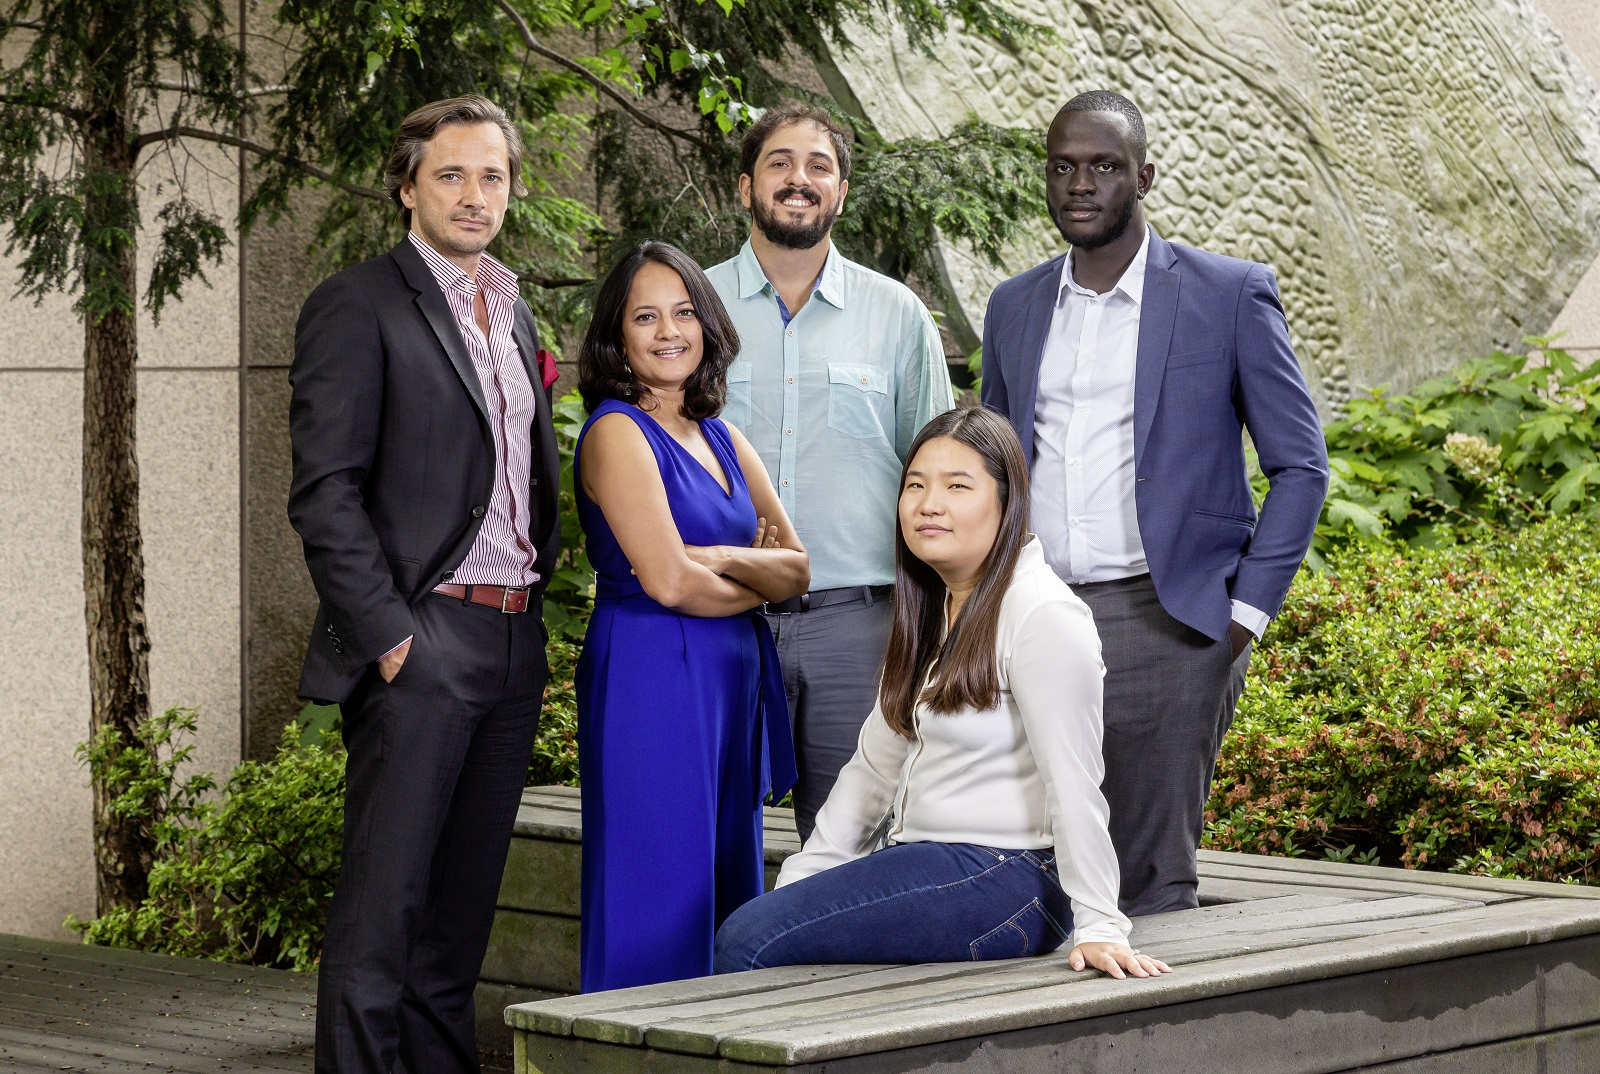 Laureates Rolex Awards for enterprise 2019. From left: Grégoire Courtine, Krithi Karanth, João Campos-Silva, Miranda Wang, Brian Gitta.